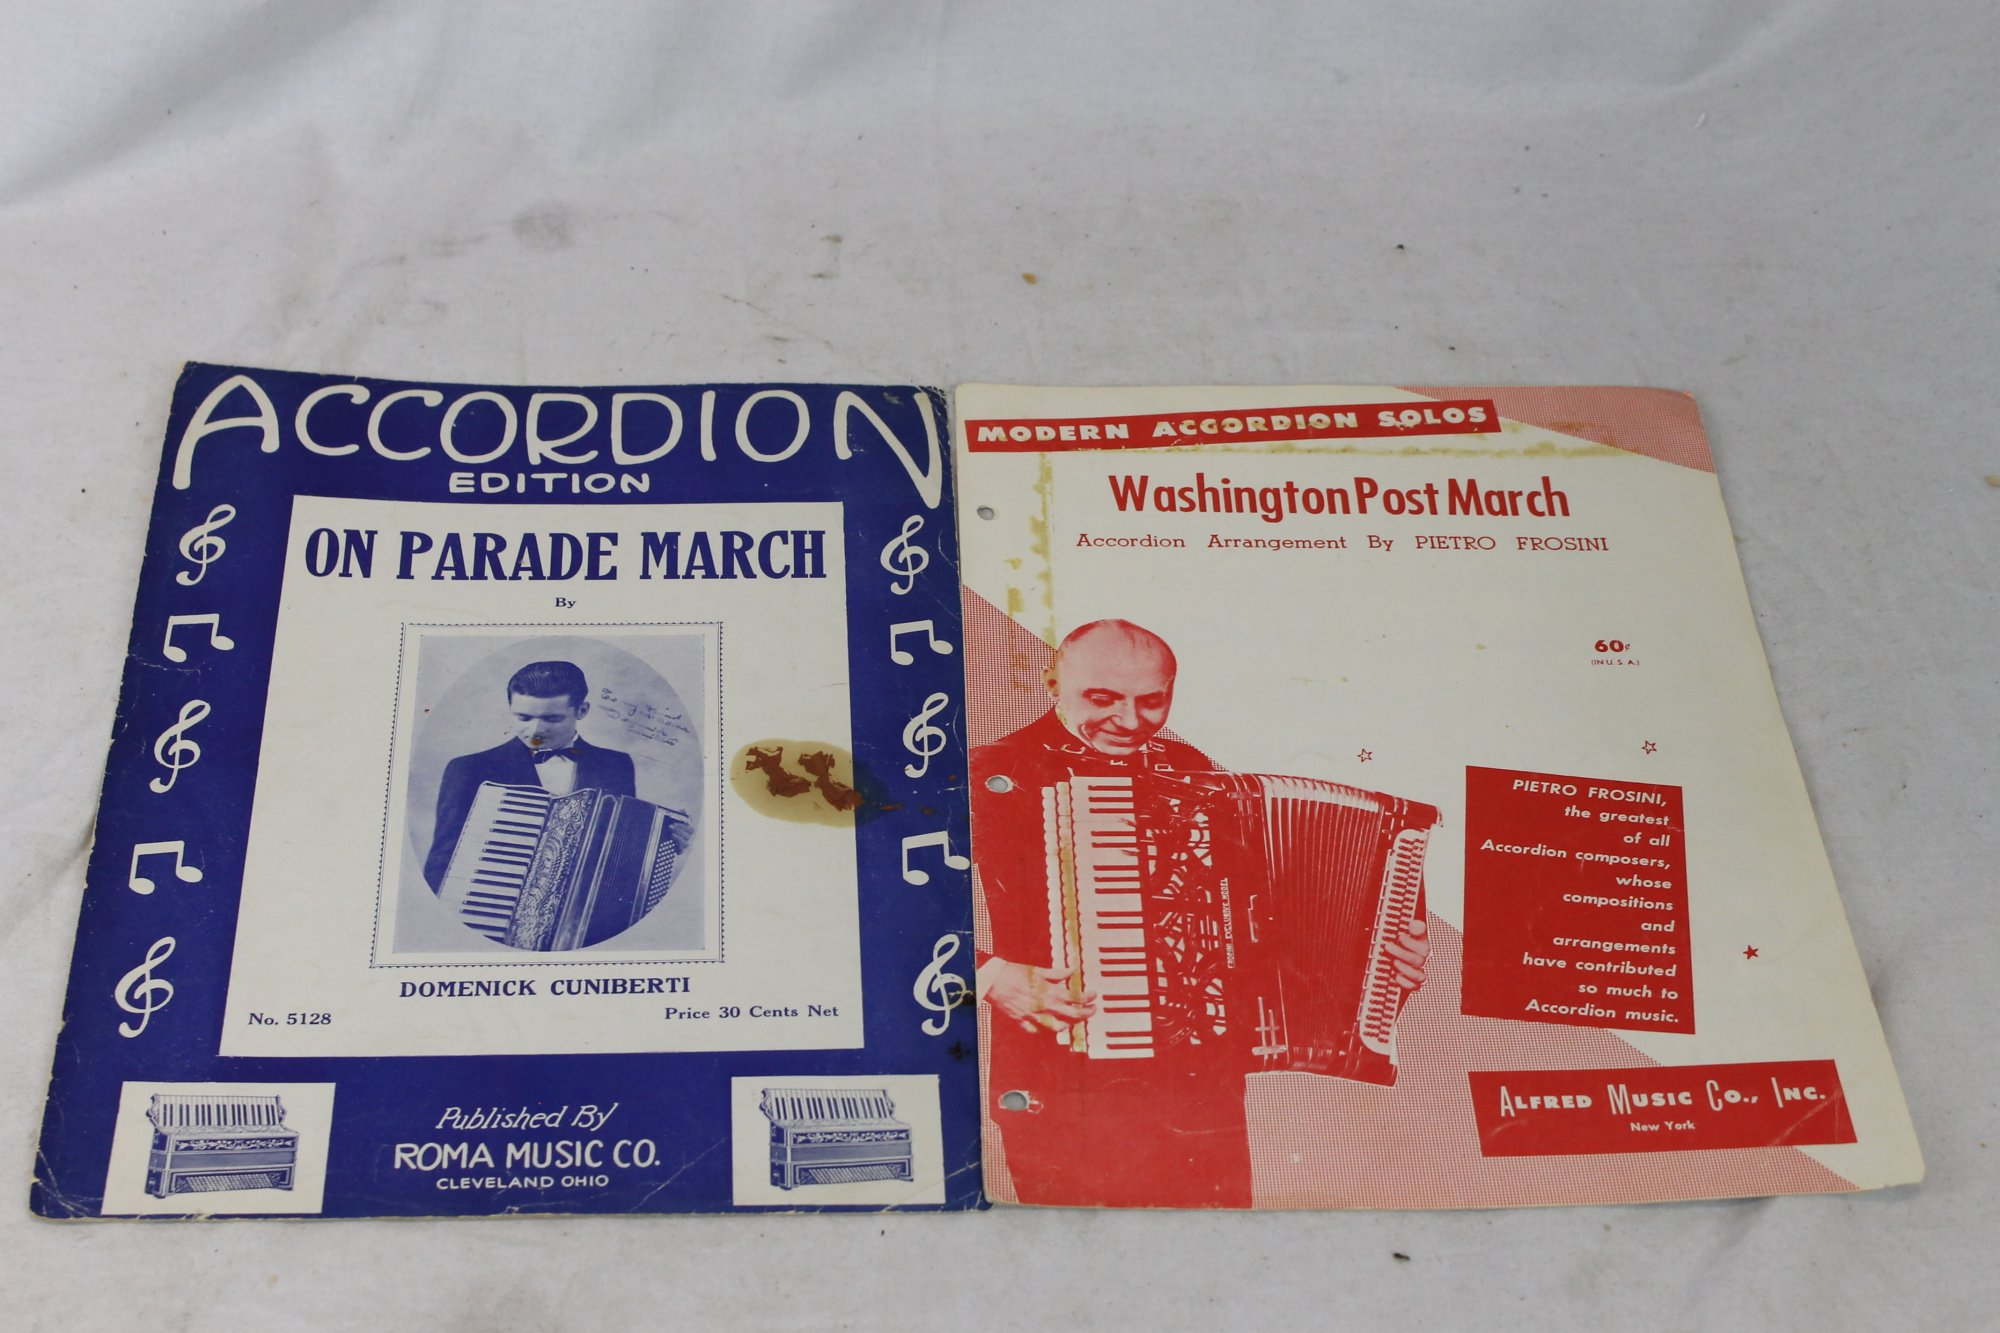 Lot of 2 Used Accordion Music Books and Sheets - Washington Post March, On Parade March